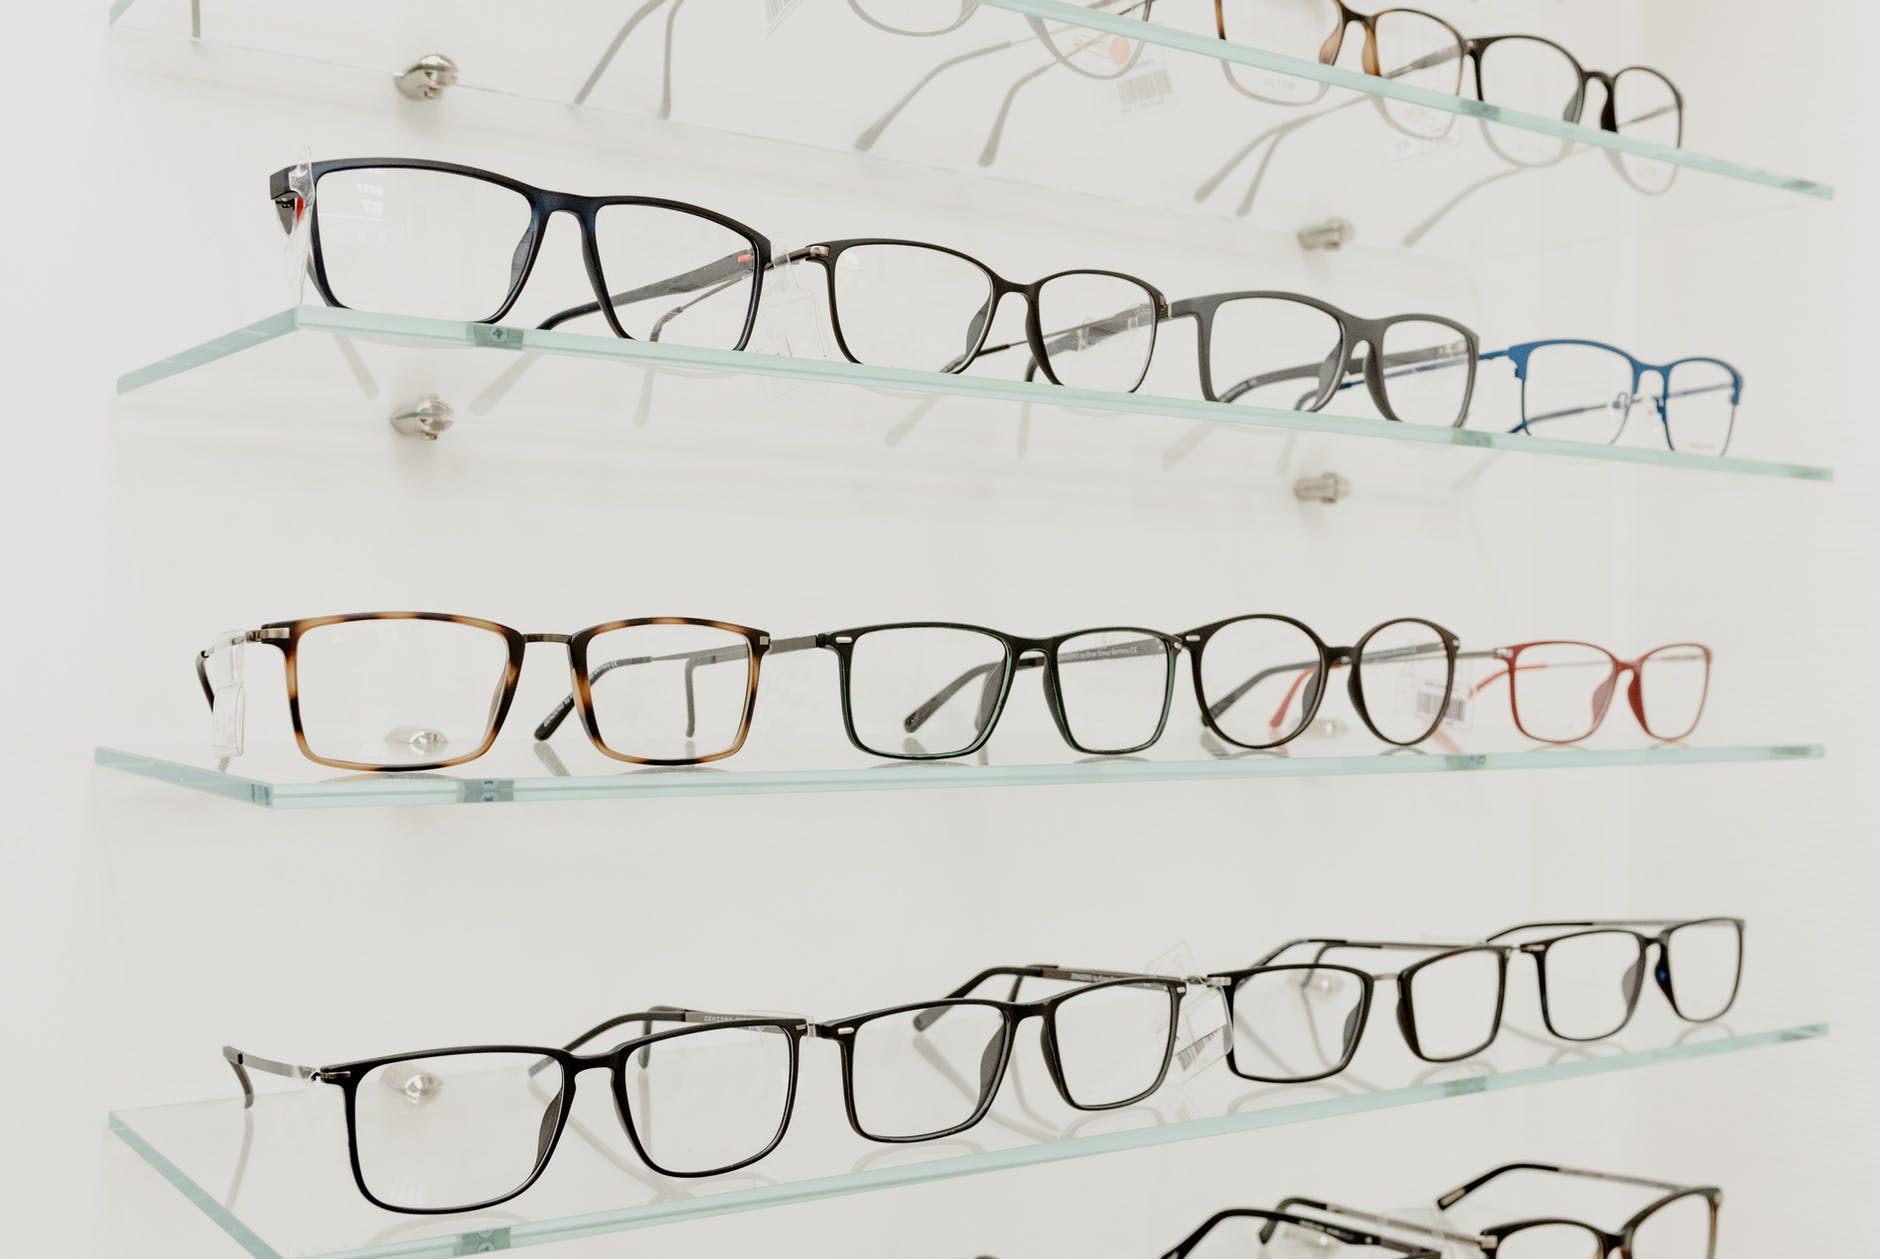 collection of eyeglasses on shelves in store